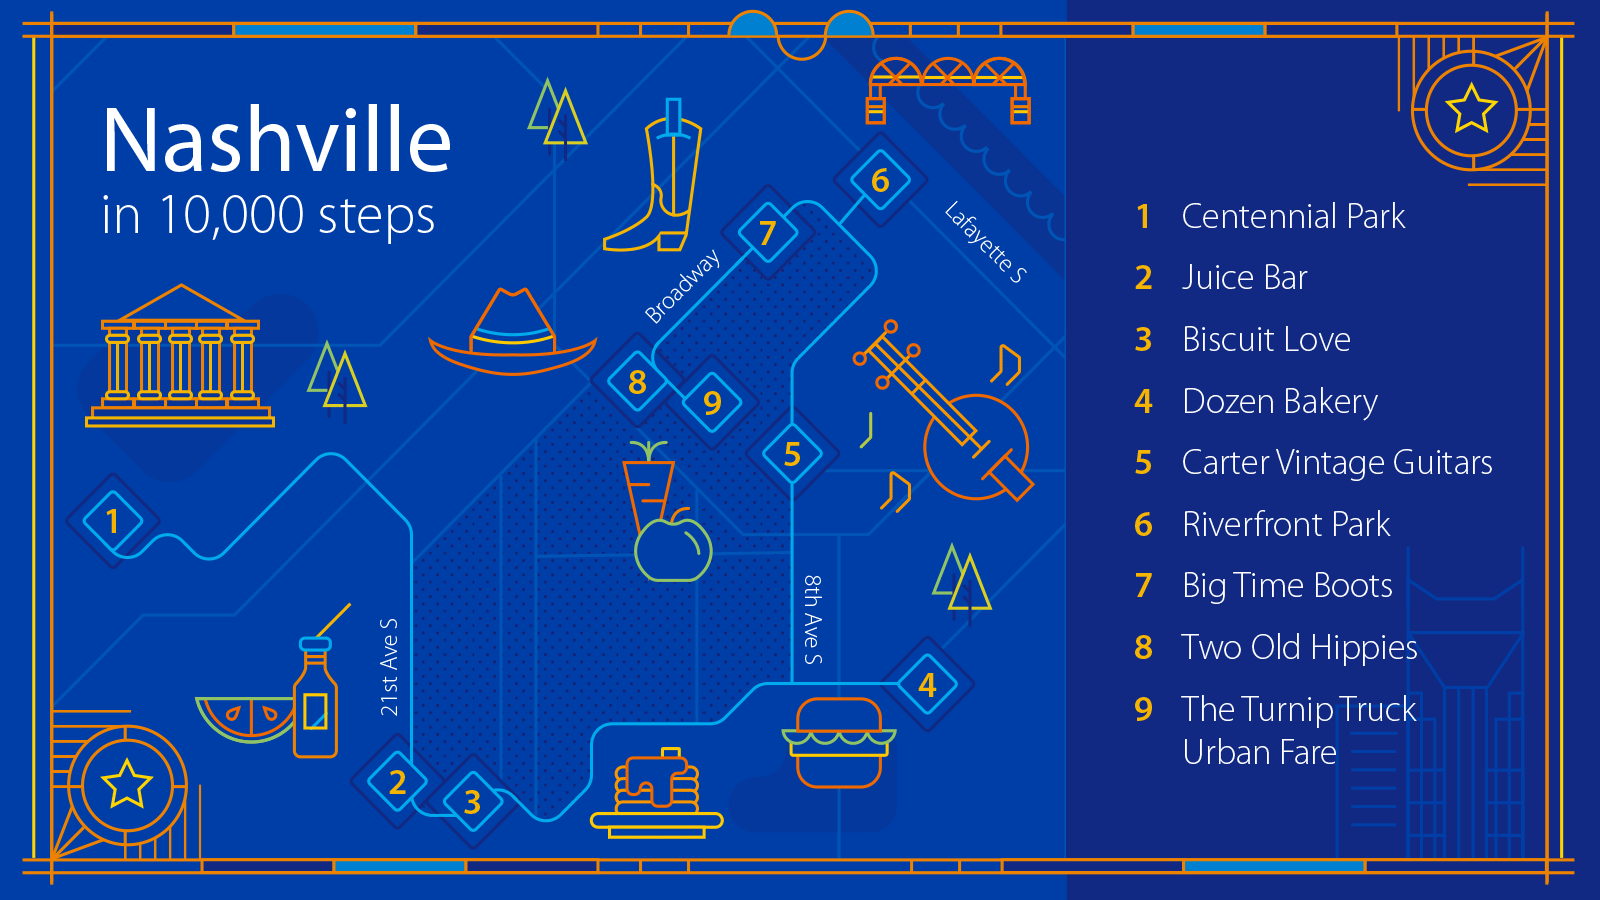 nashville-cashless-walking-tour-map-1600x900